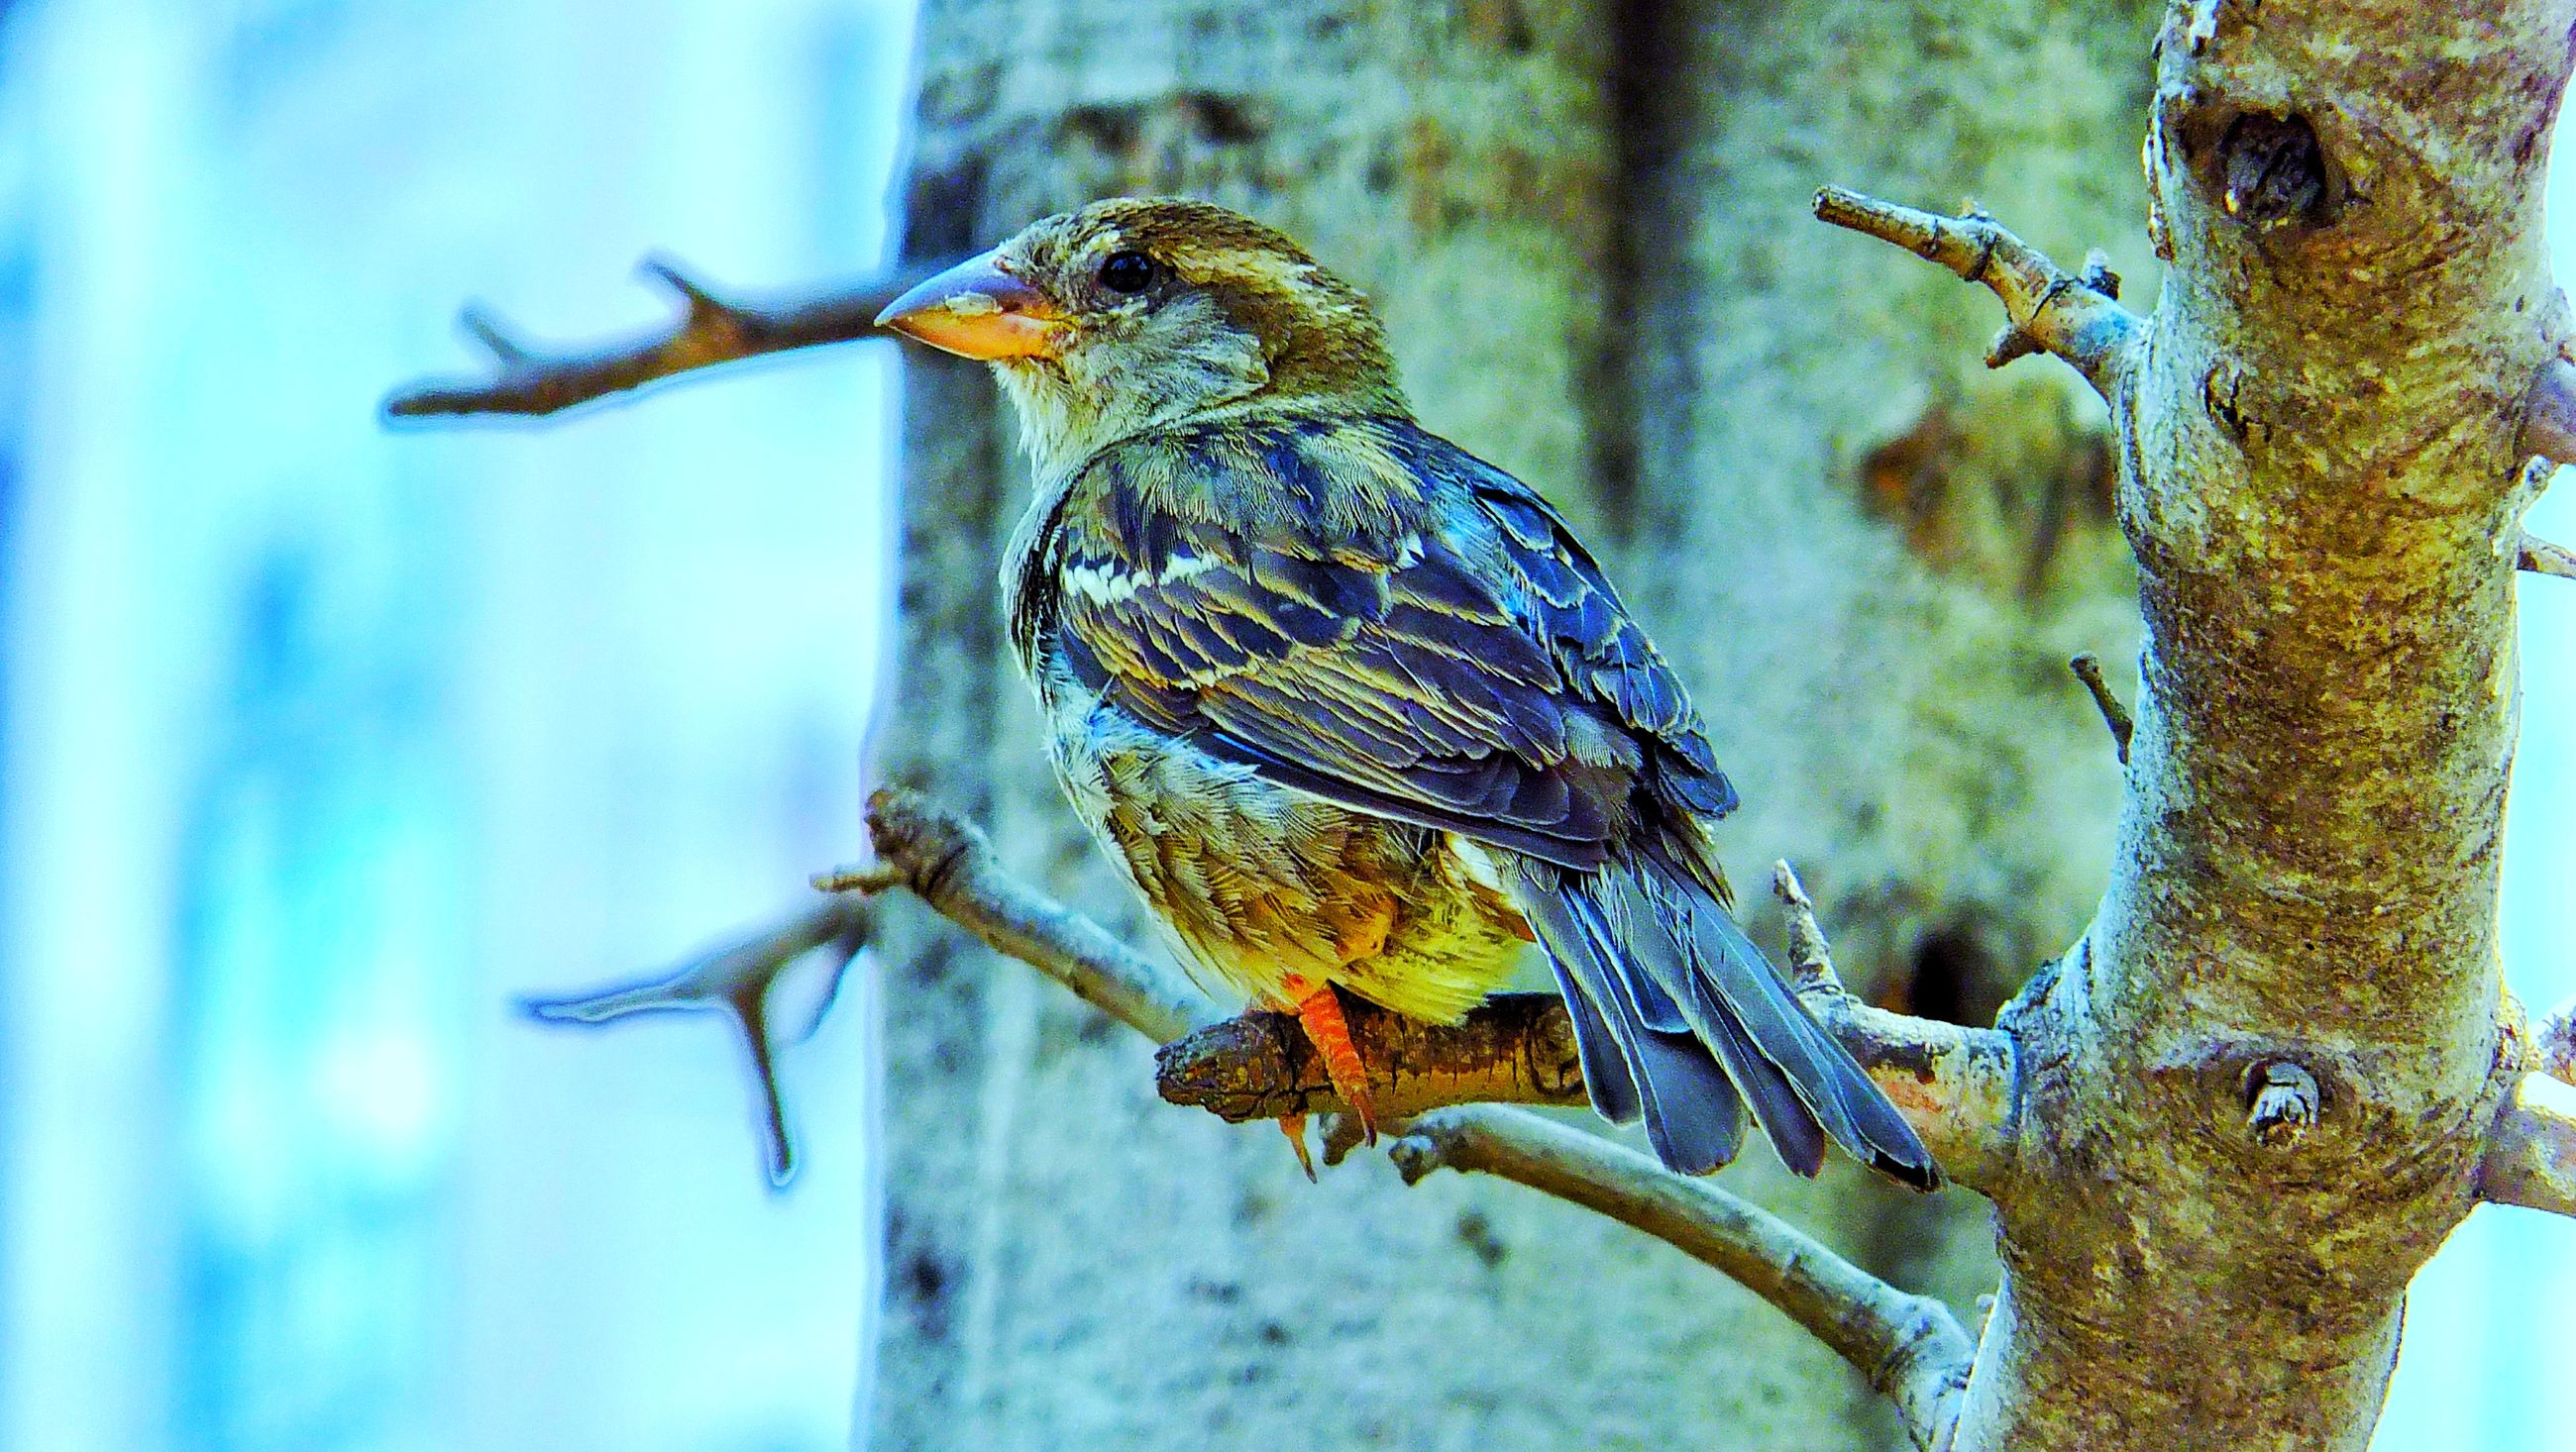 bird, animal themes, animals in the wild, animal wildlife, perching, nature, one animal, no people, outdoors, close-up, day